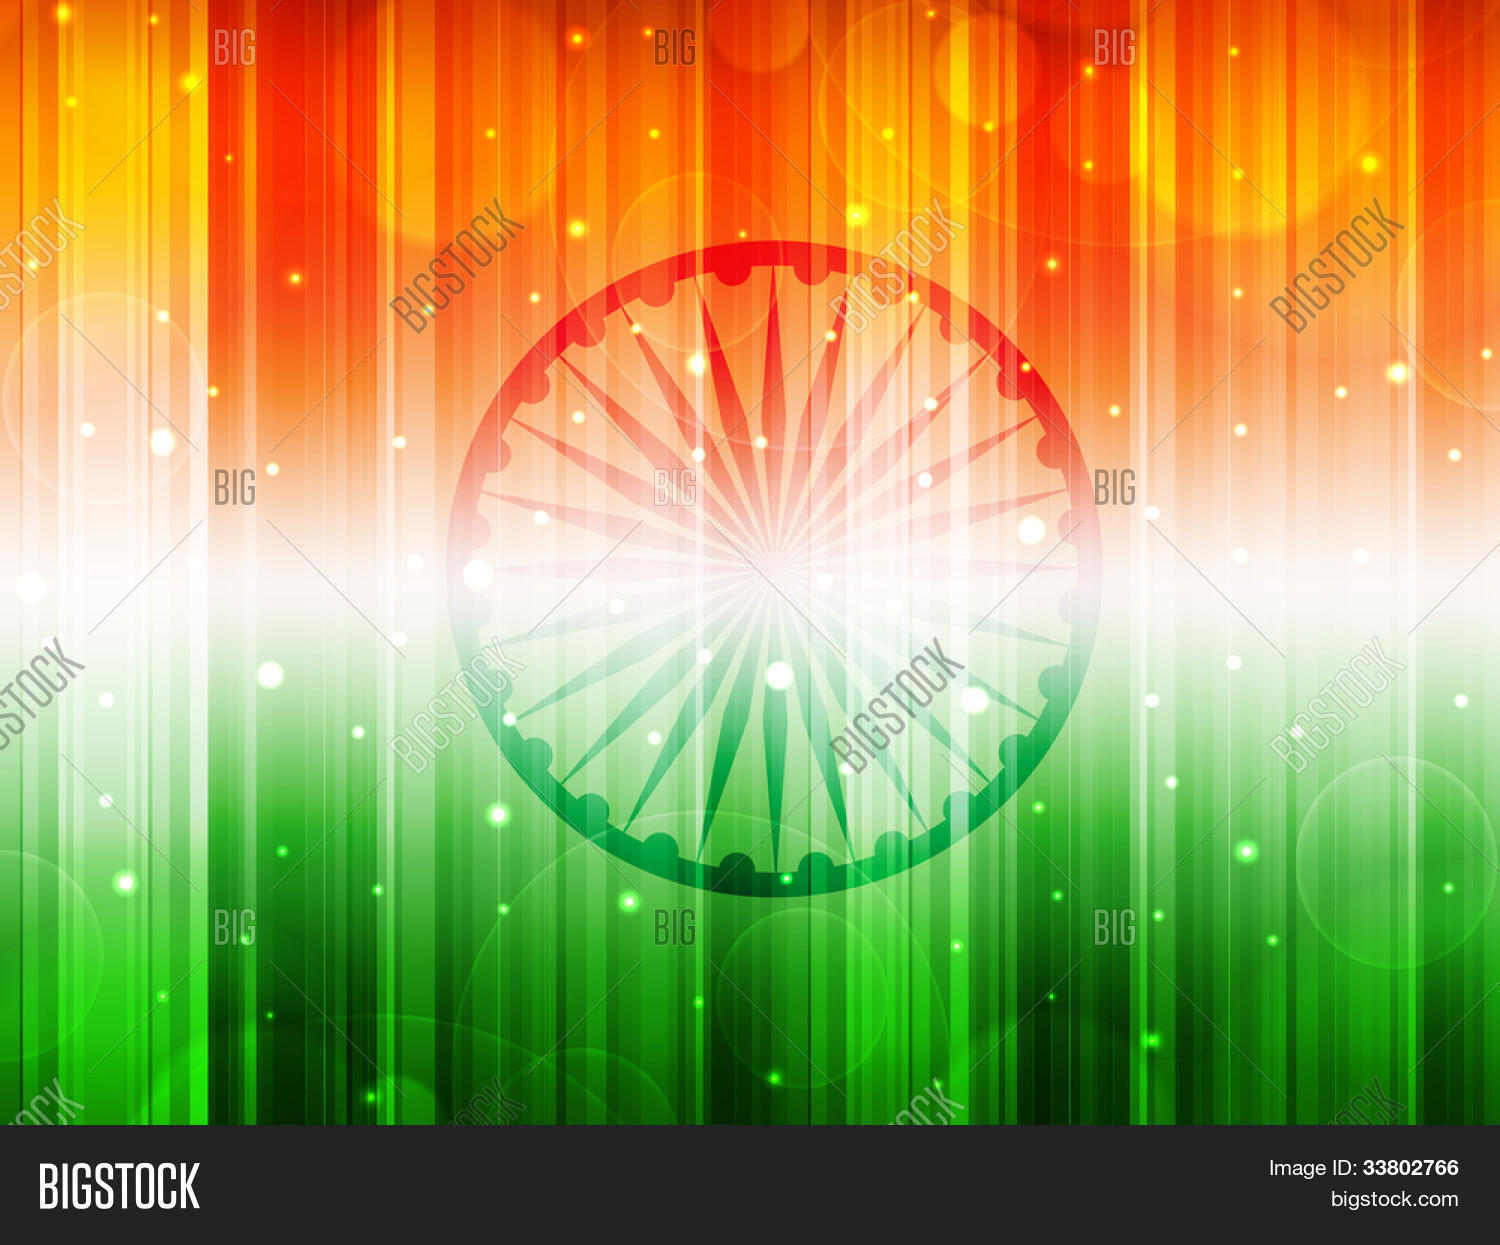 Indian Flag Theme: Indian Flag Theme Vector & Photo (Free Trial)